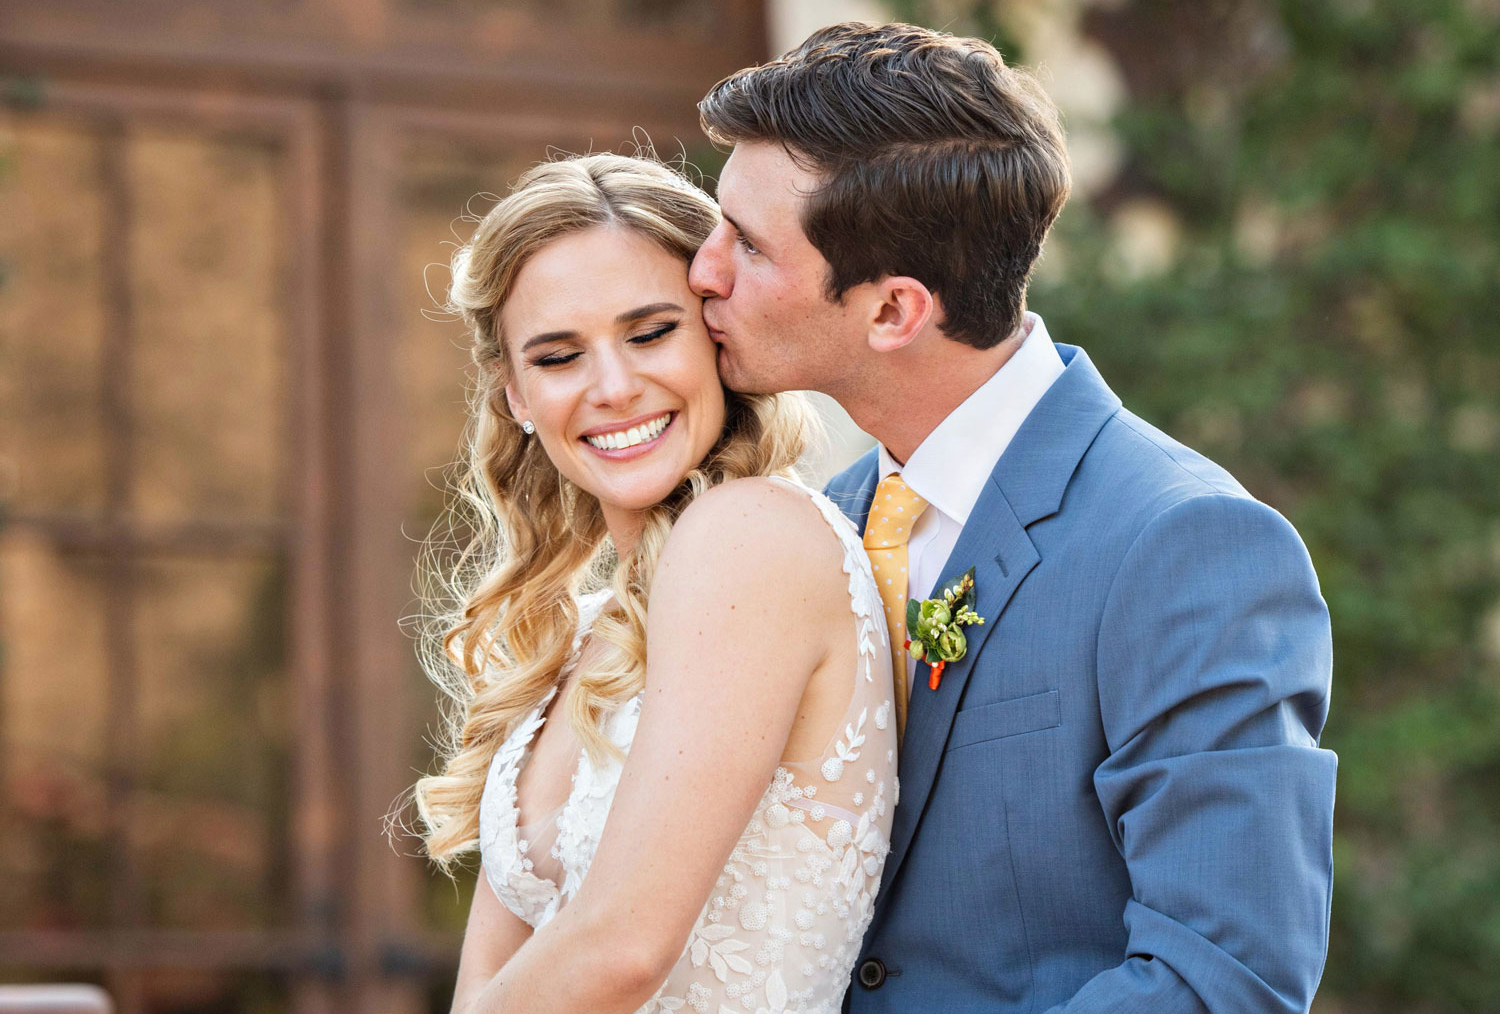 groom kissing bride on the cheek as she grins, what couples forget on their wedding